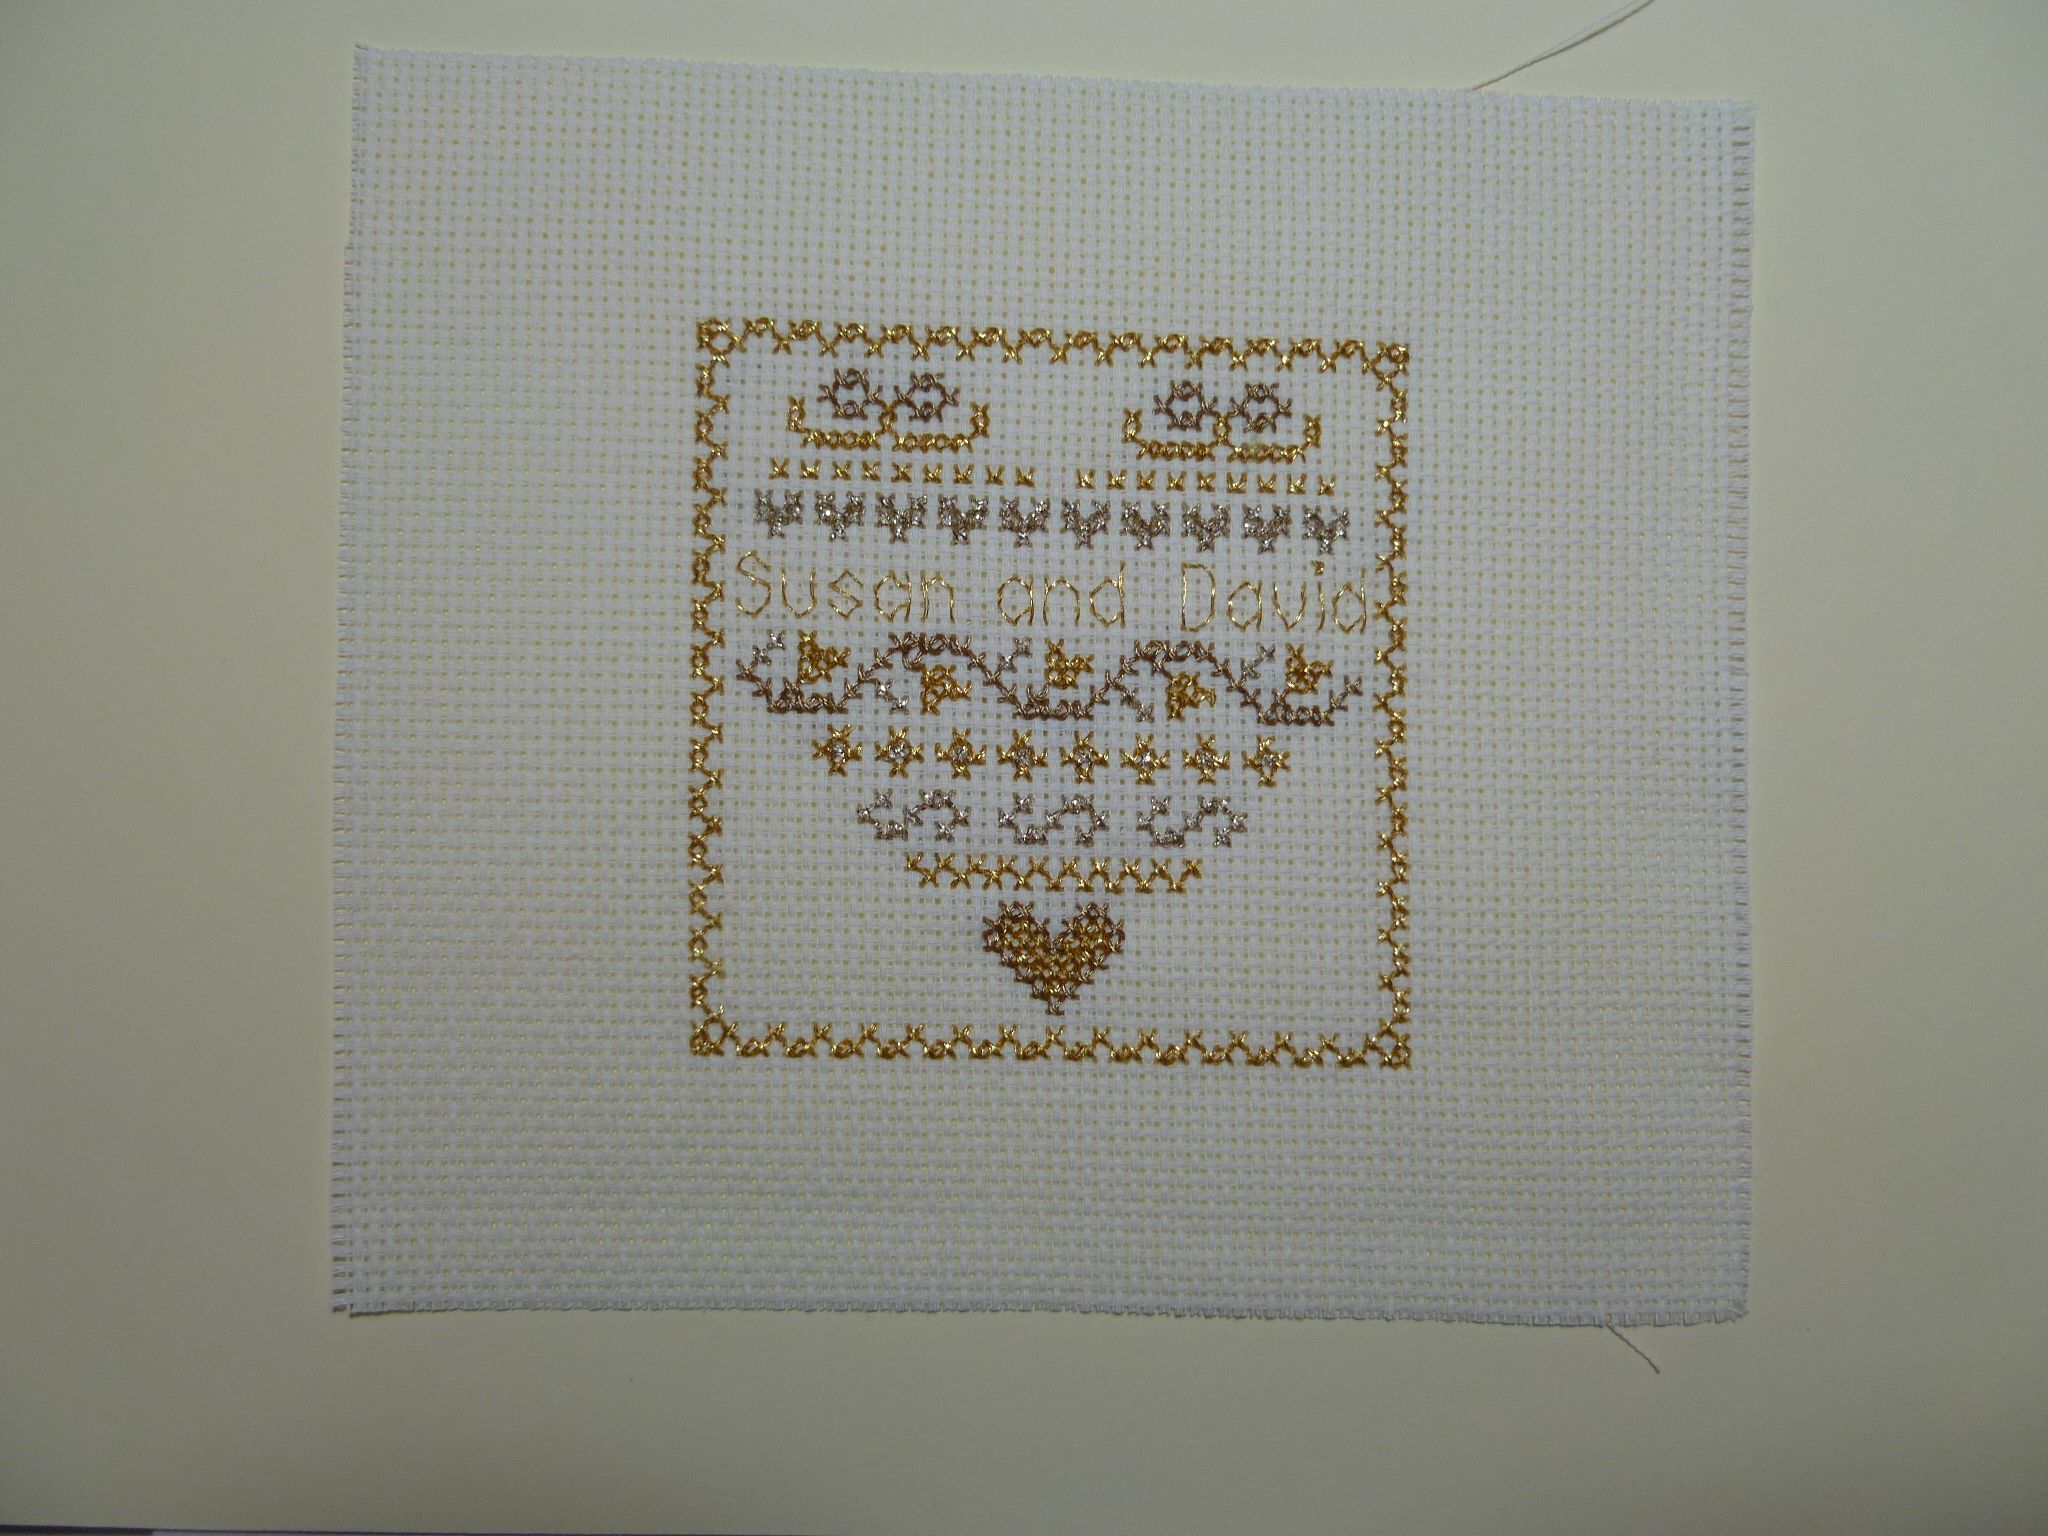 Finished golden wedding anniversary card embroidery